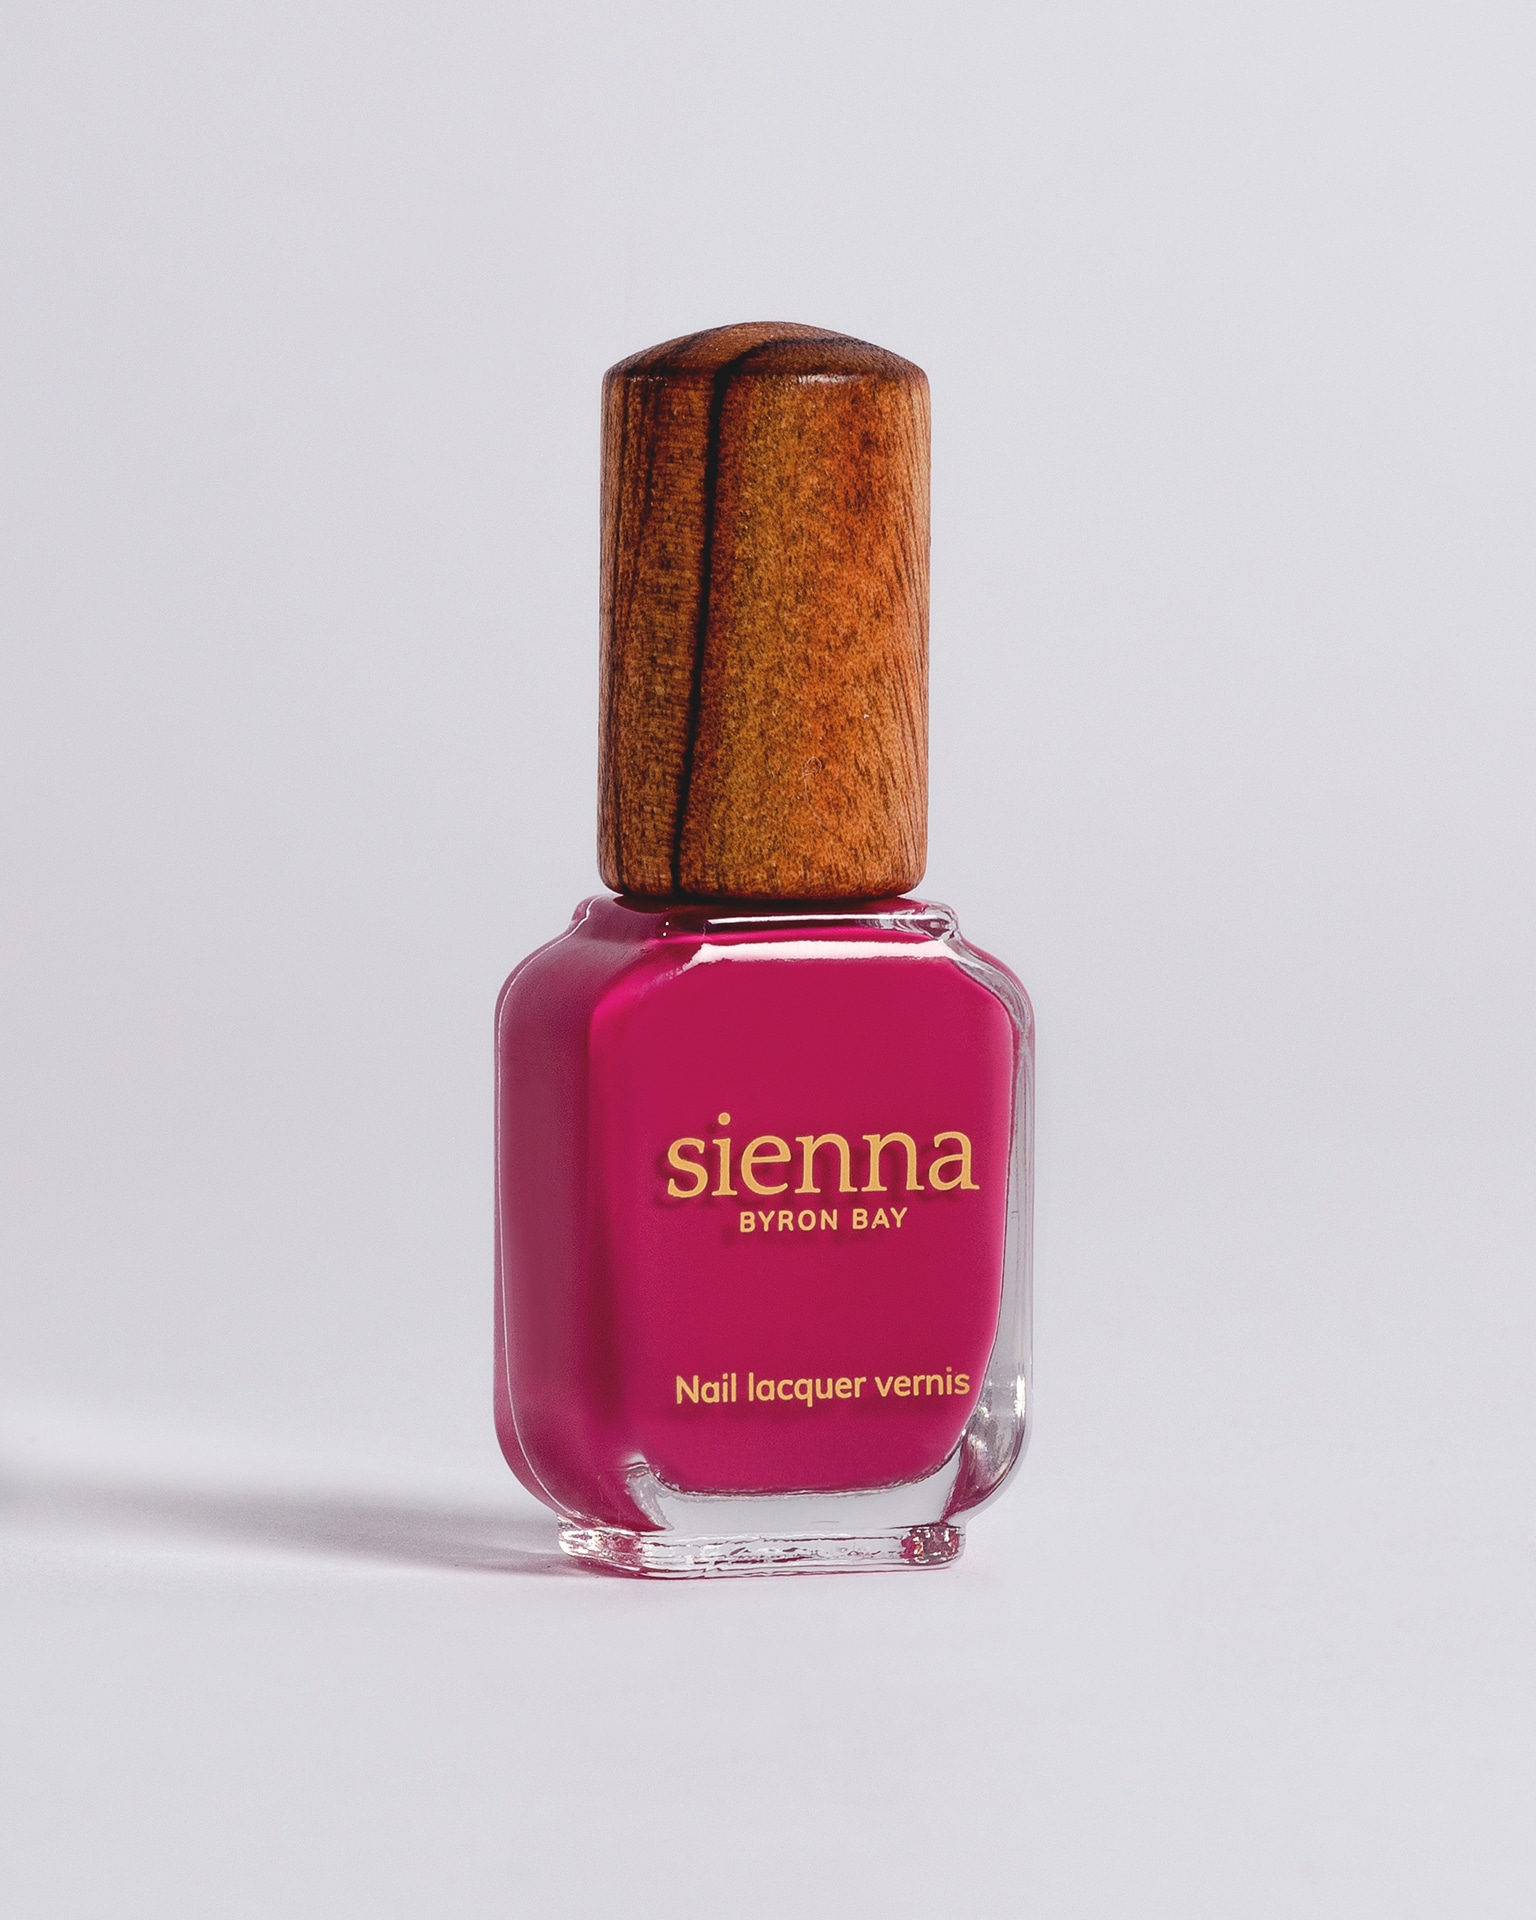 pink fuschia nail polish bottle with timber cap by sienna